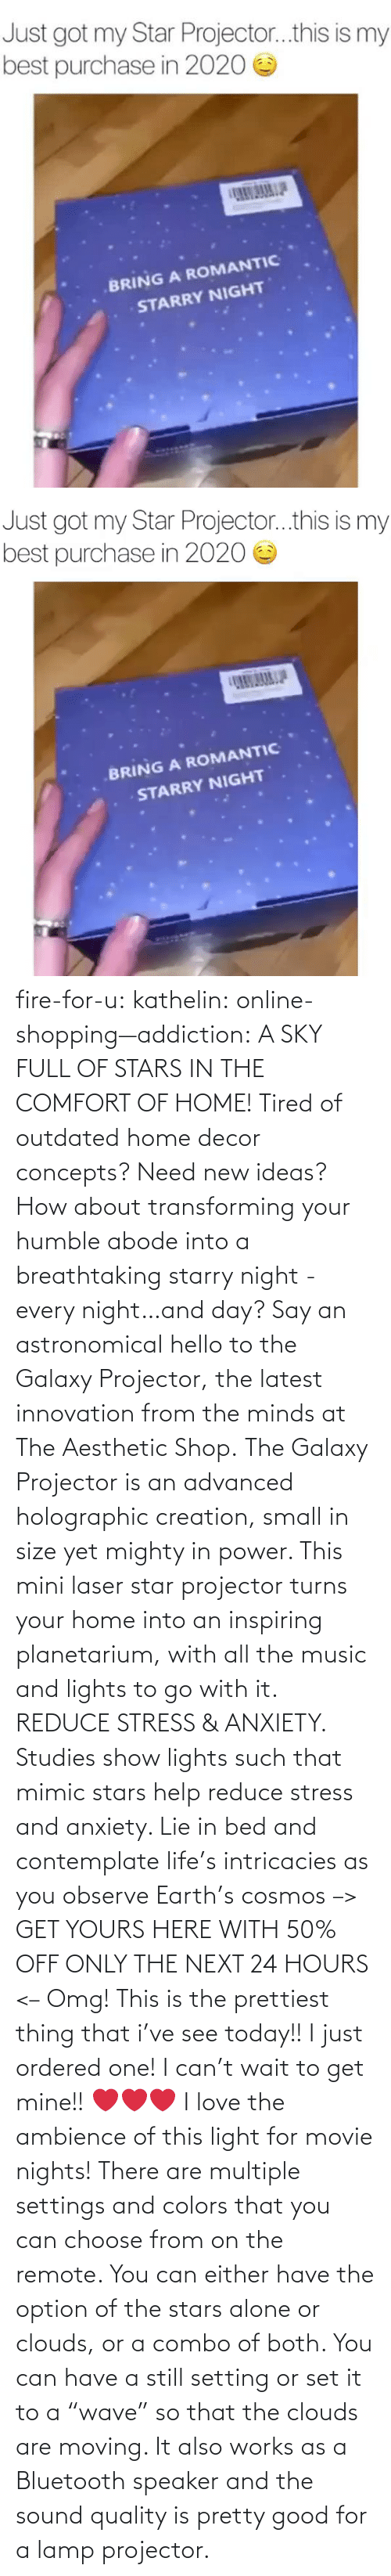 "bit.ly: fire-for-u:  kathelin: online-shopping—addiction:  A SKY FULL OF STARS IN THE COMFORT OF HOME! Tired of outdated home decor concepts? Need new ideas? How about transforming your humble abode into a breathtaking starry night - every night…and day? Say an astronomical hello to the Galaxy Projector, the latest innovation from the minds at The Aesthetic Shop. The Galaxy Projector is an advanced holographic creation, small in size yet mighty in power. This mini laser star projector turns your home into an inspiring planetarium, with all the music and lights to go with it. REDUCE STRESS & ANXIETY. Studies show lights such that mimic stars help reduce stress and anxiety. Lie in bed and contemplate life's intricacies as you observe Earth's cosmos  –> GET YOURS HERE WITH 50% OFF ONLY THE NEXT 24 HOURS <–   Omg! This is the prettiest thing that i've see today!! I just ordered one! I can't wait to get mine!! ❤️️❤️️❤️️  I love the ambience of this light for movie nights! There are multiple settings and colors that you can choose from on the remote. You can either have the option of the stars alone or clouds, or a combo of both. You can have a still setting or set it to a ""wave"" so that the clouds are moving. It also works as a Bluetooth speaker and the sound quality is pretty good for a lamp projector."